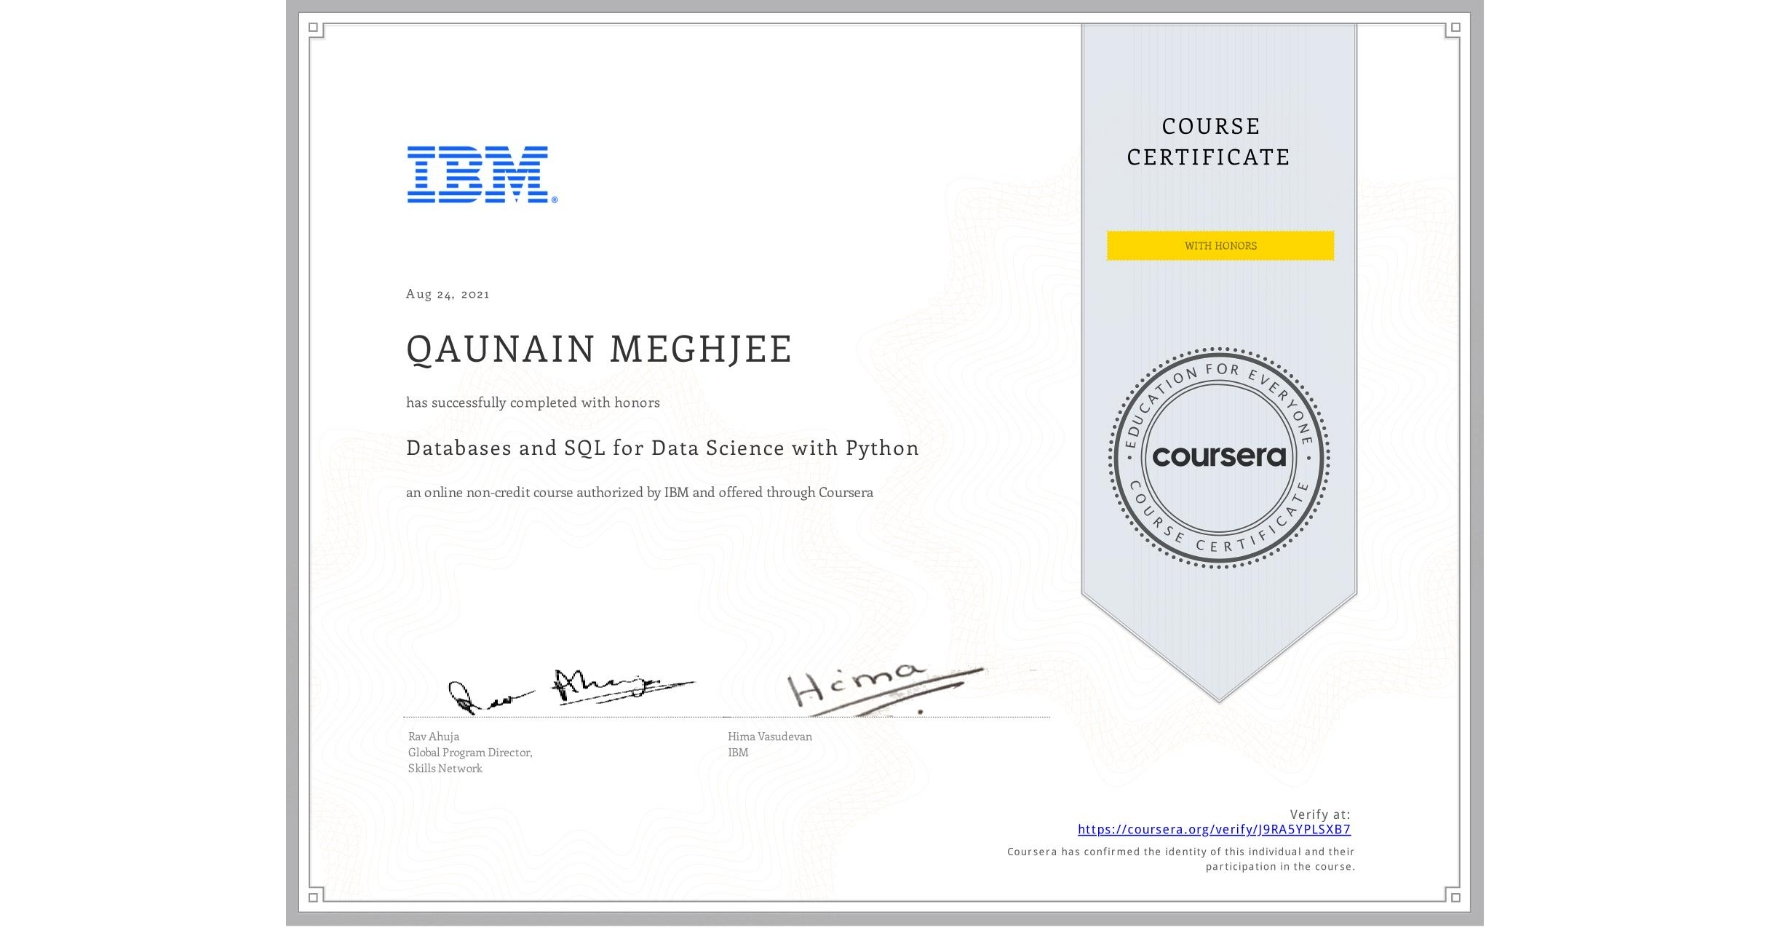 View certificate for QAUNAIN MEGHJEE, Databases and SQL for Data Science with Python, an online non-credit course authorized by IBM and offered through Coursera